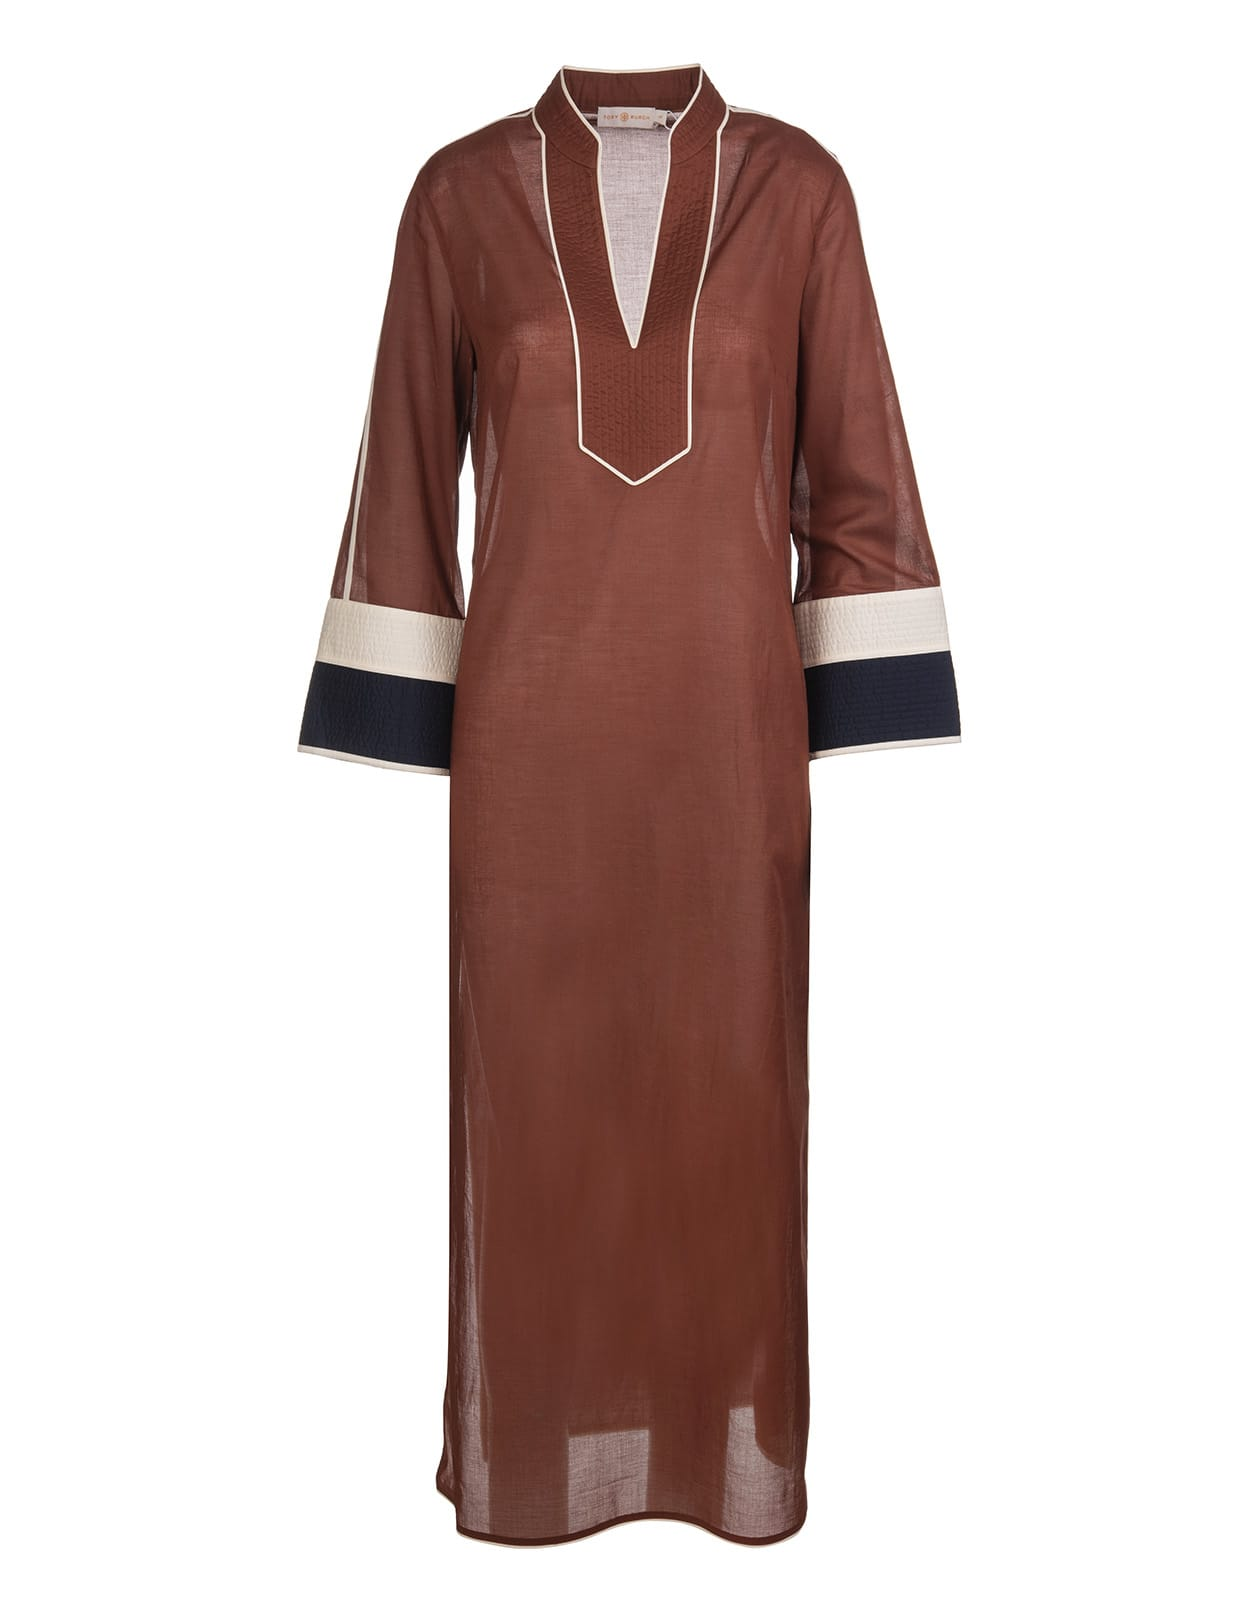 Buy Tory Burch Brown Long Kaftan With Contrast Finishes online, shop Tory Burch with free shipping